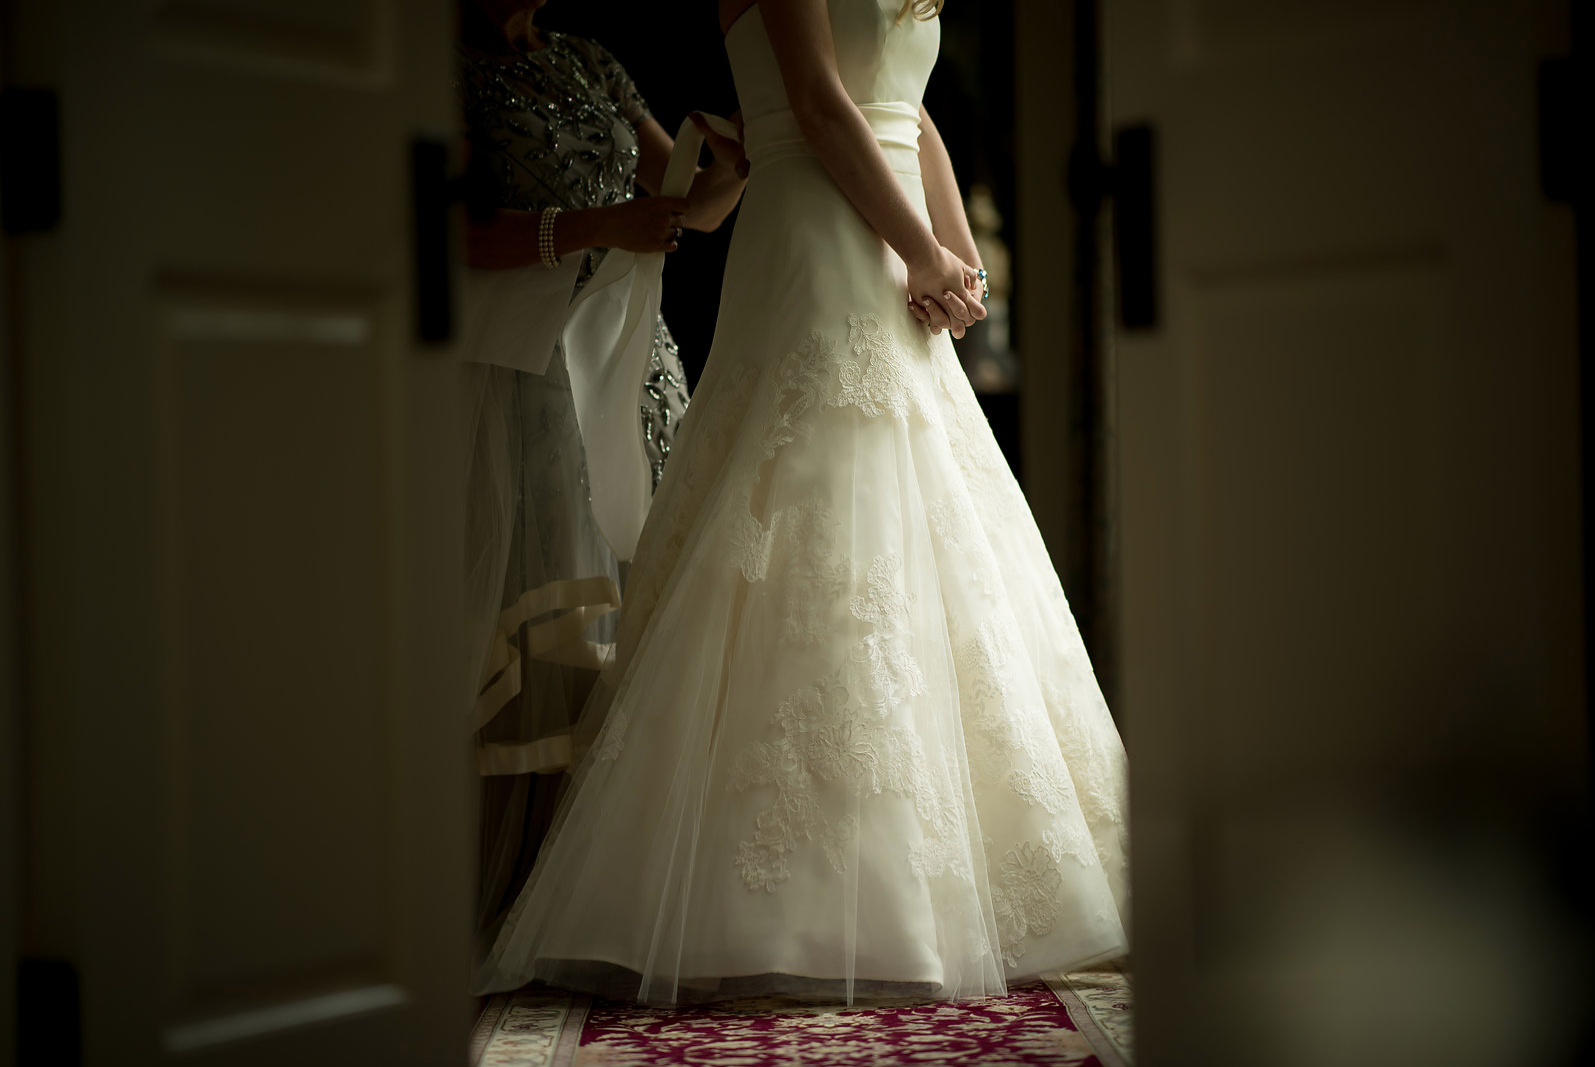 Jen-Mardus-Photography-082017-wedding-dress.png